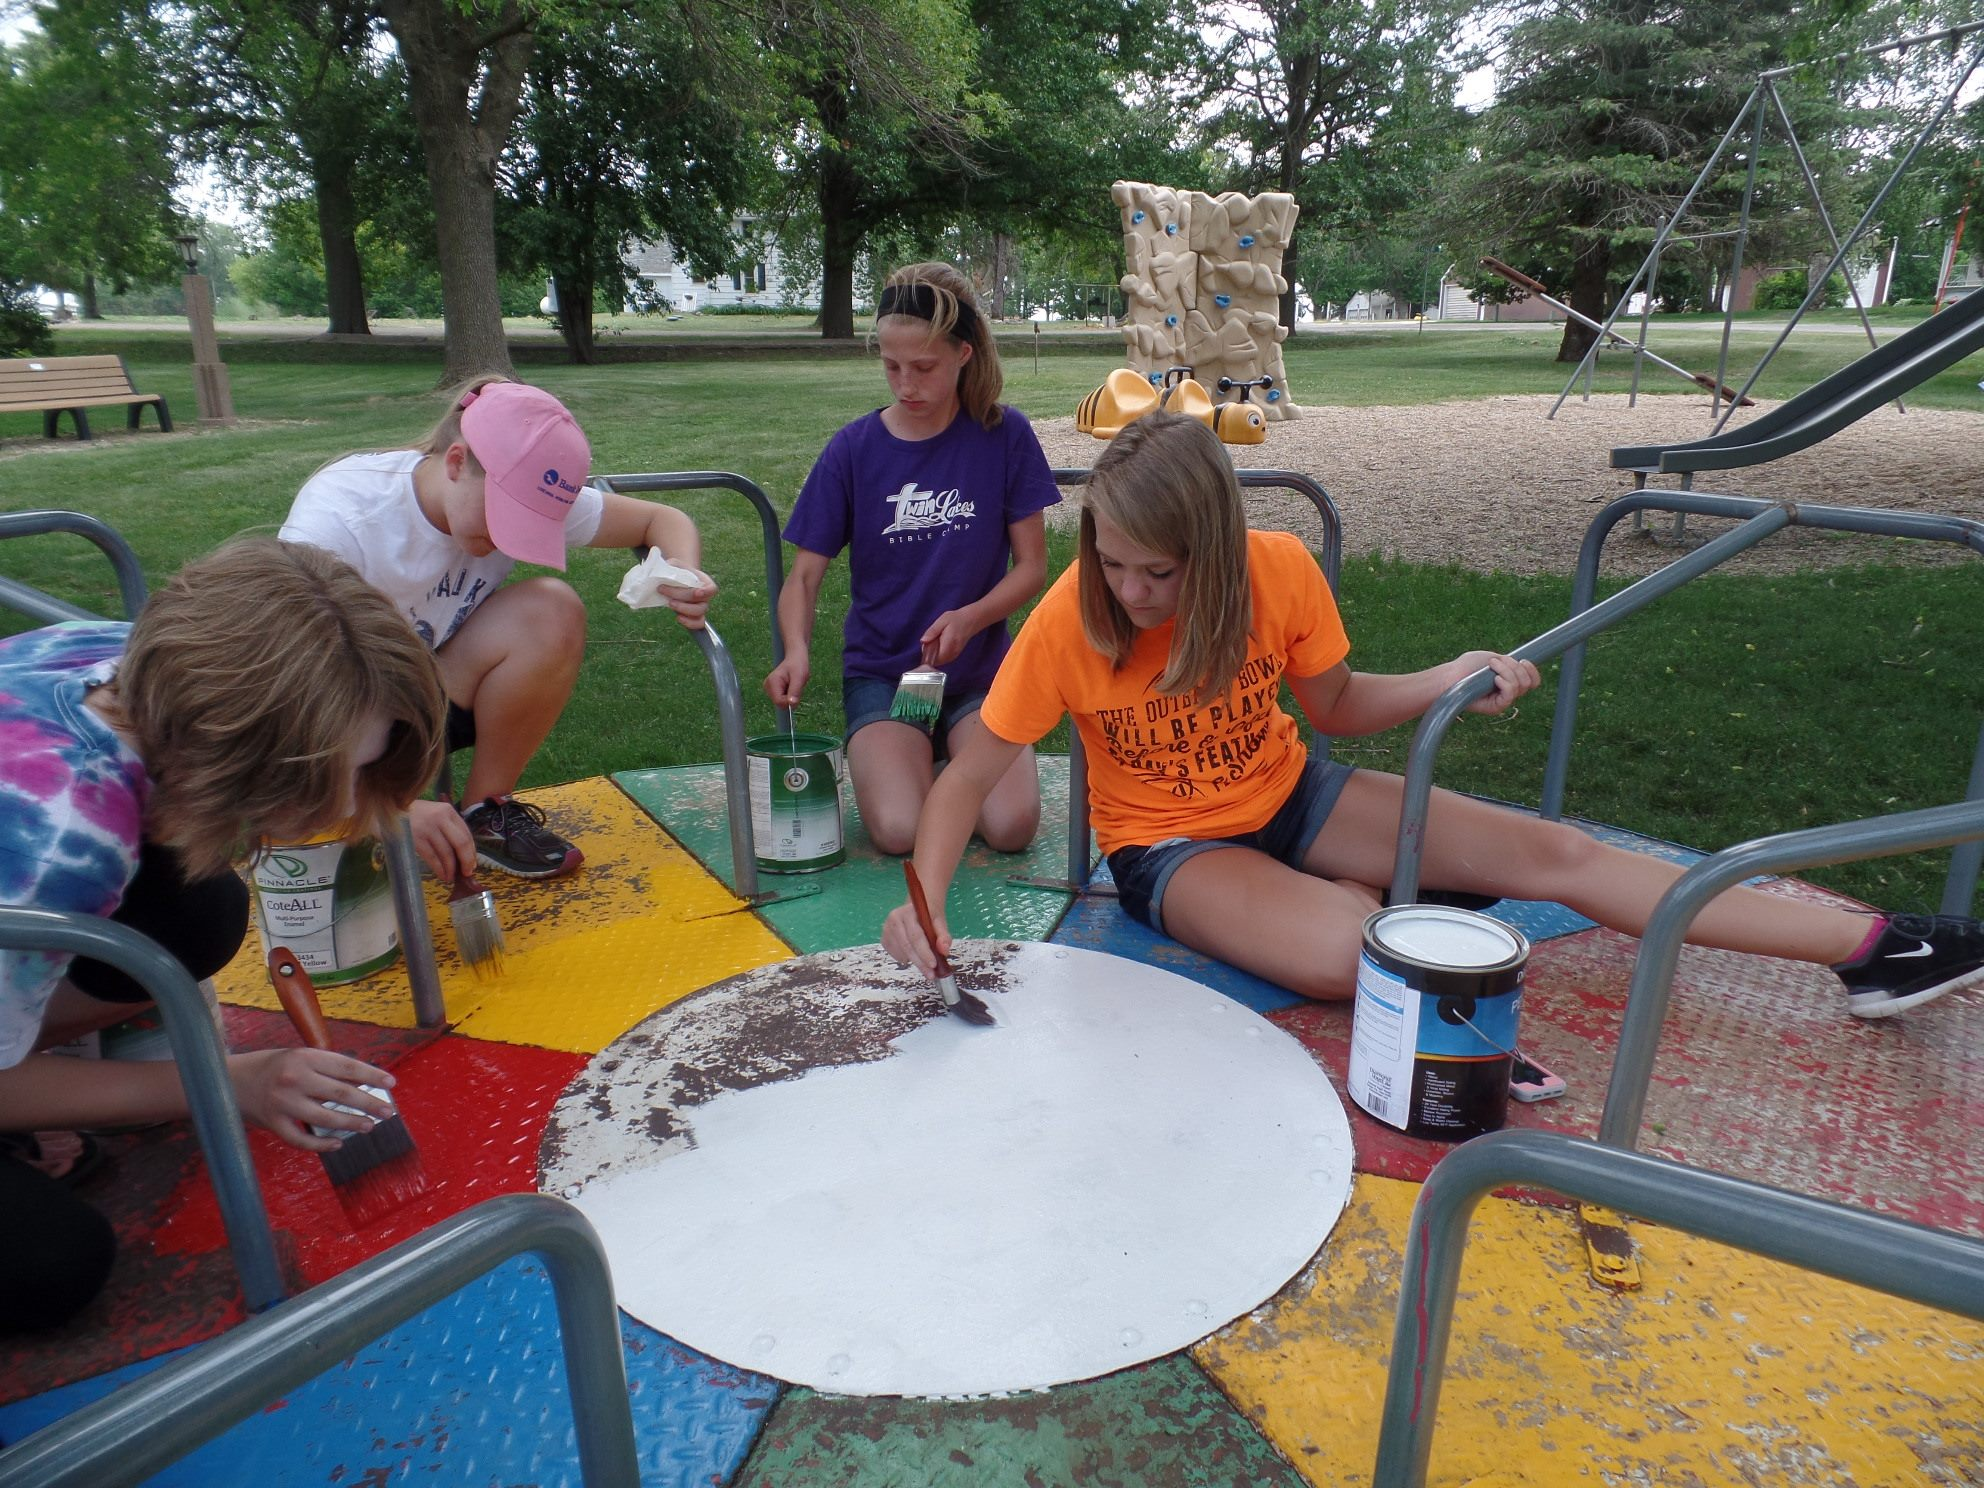 Image of volunteers painting playground equipment at Plover City Park